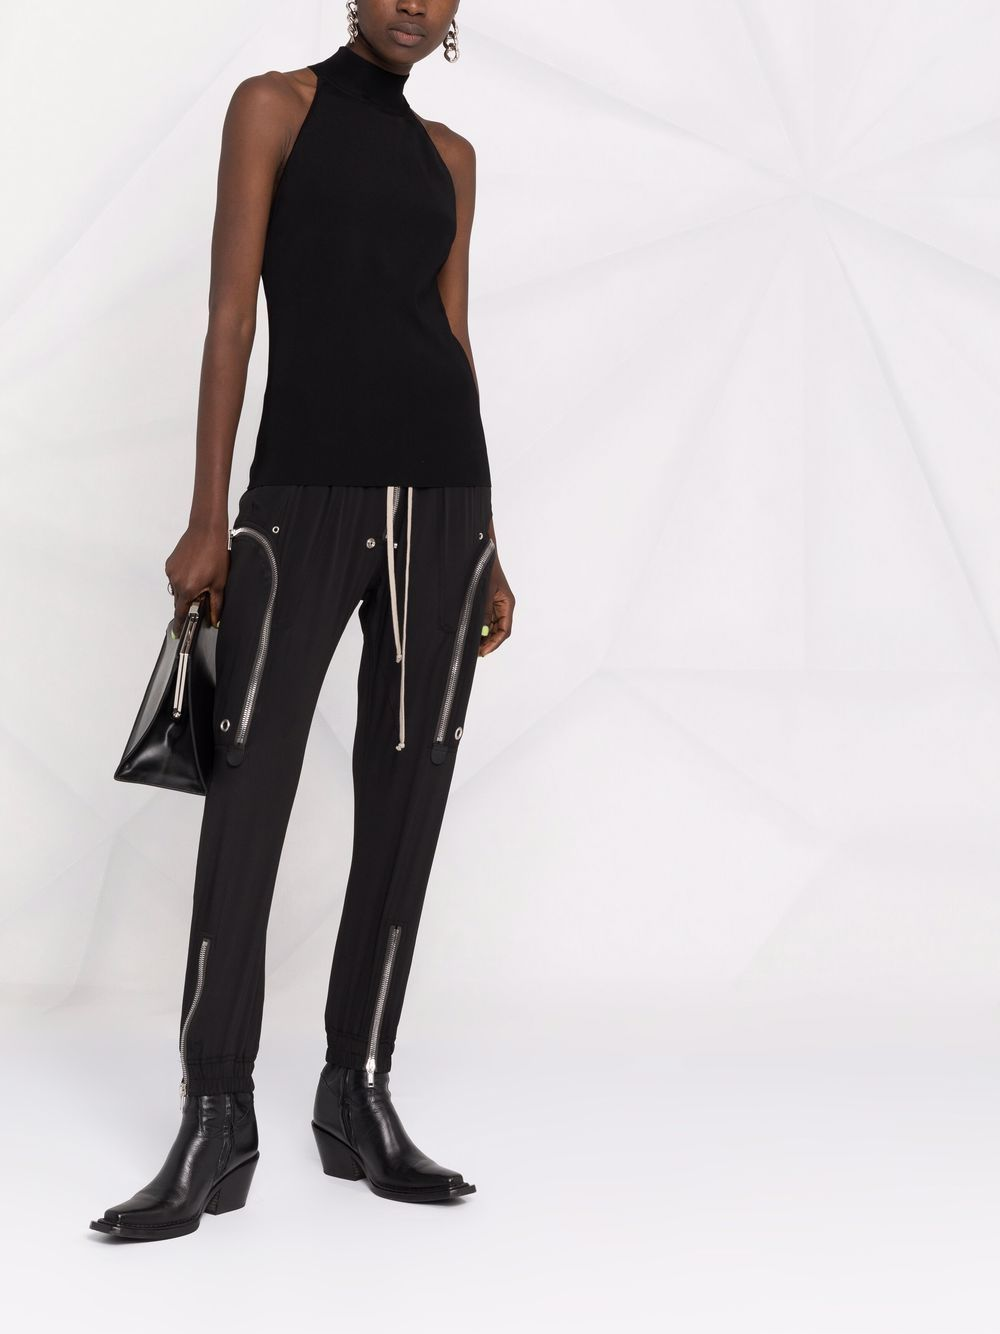 Black zip-detail sleeveless top featuring high neck GIVENCHY |  | BW60UW4ZA5001